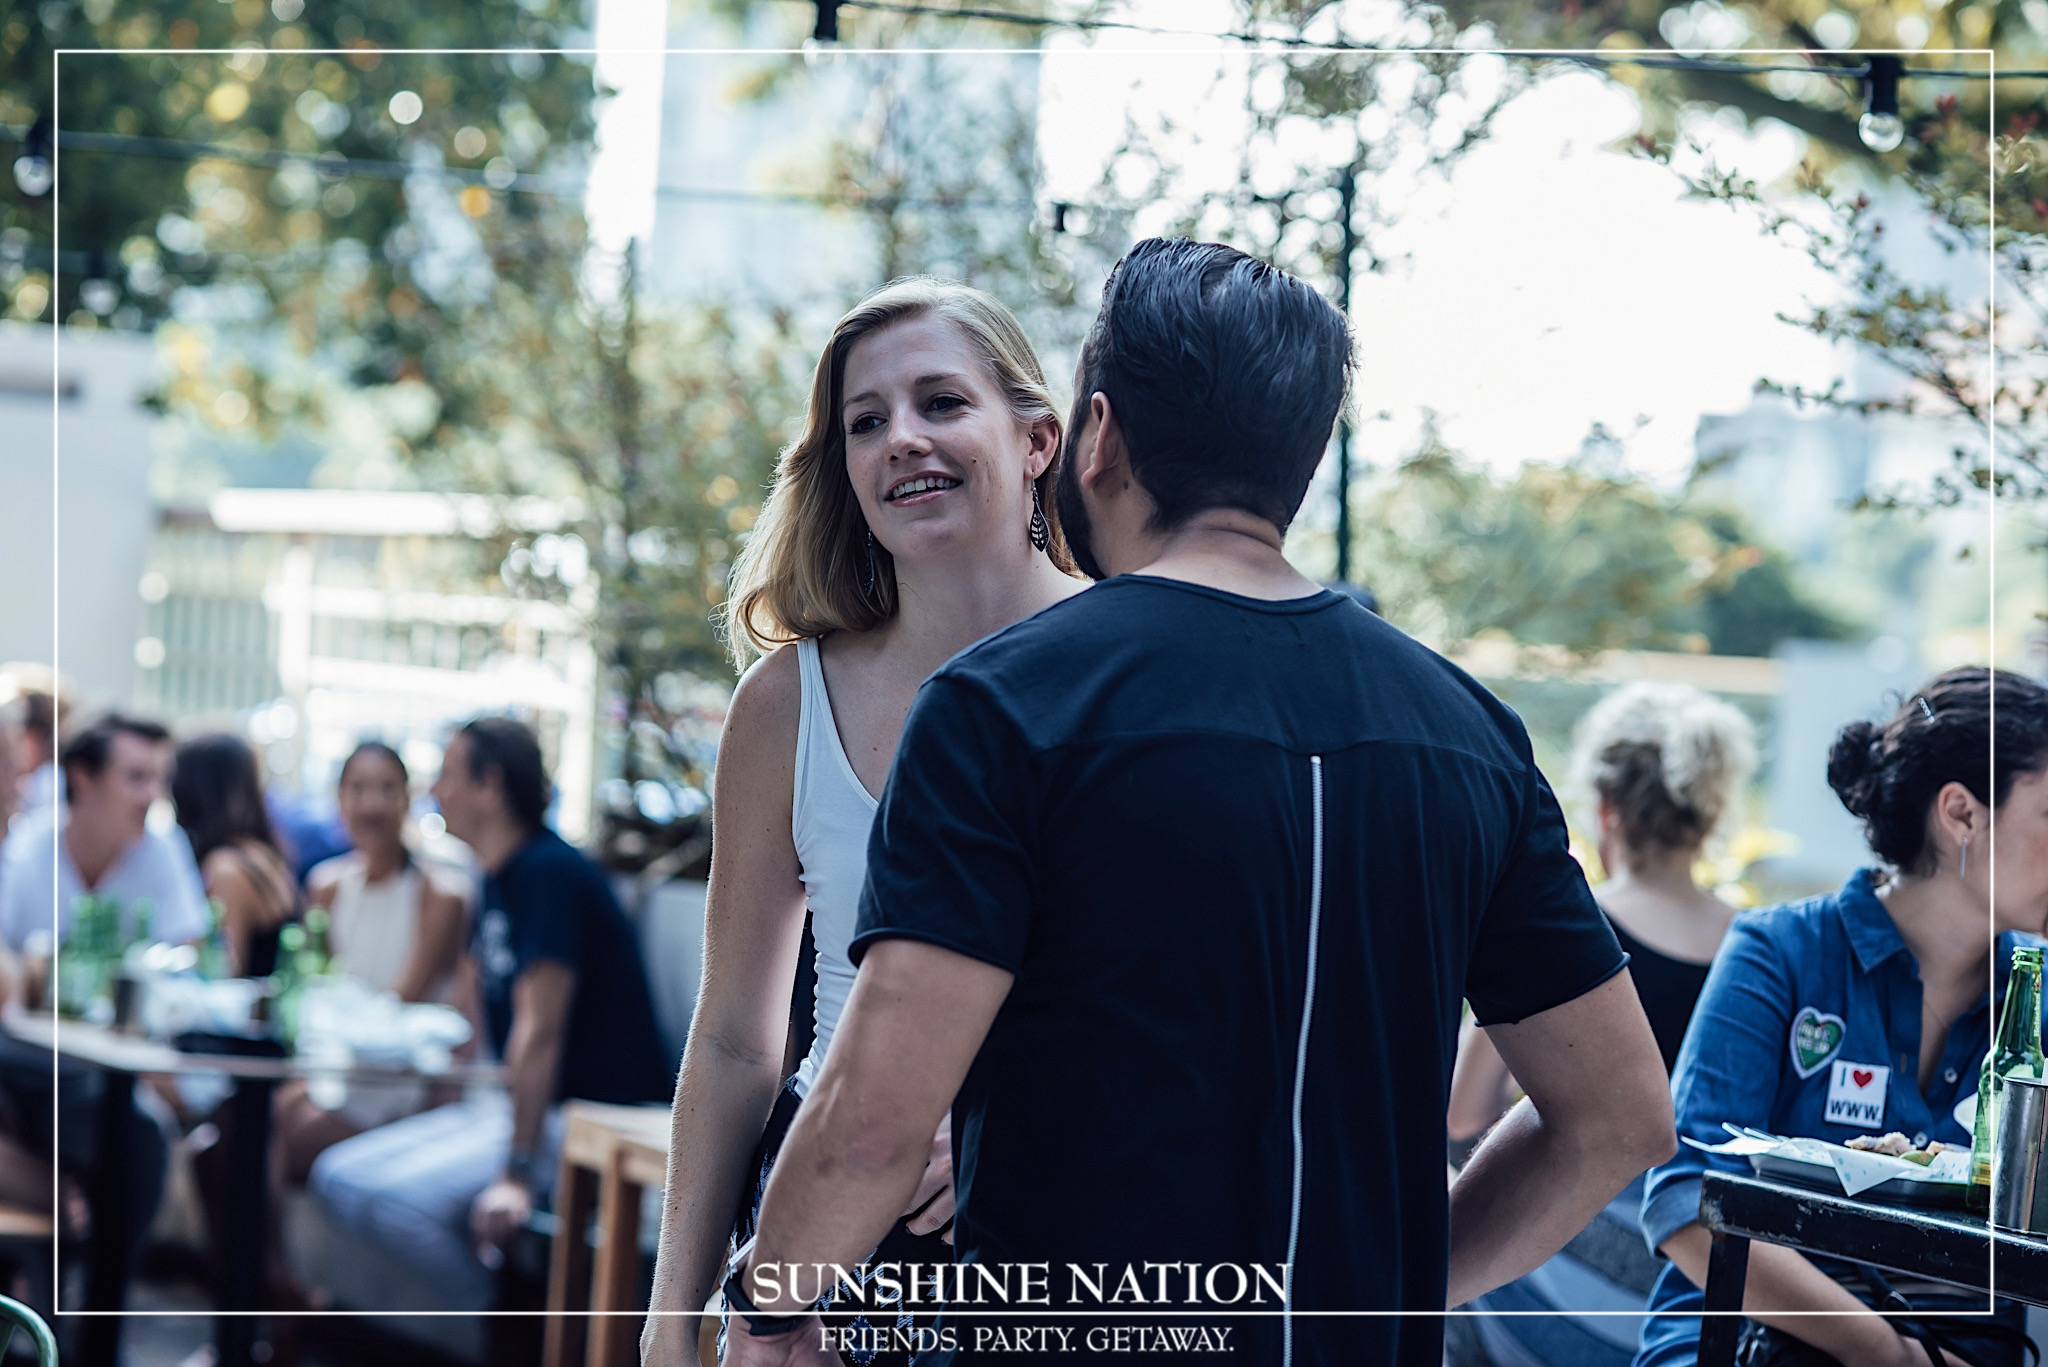 18092016_SunshineNation_Colossal064_Watermarked.jpg